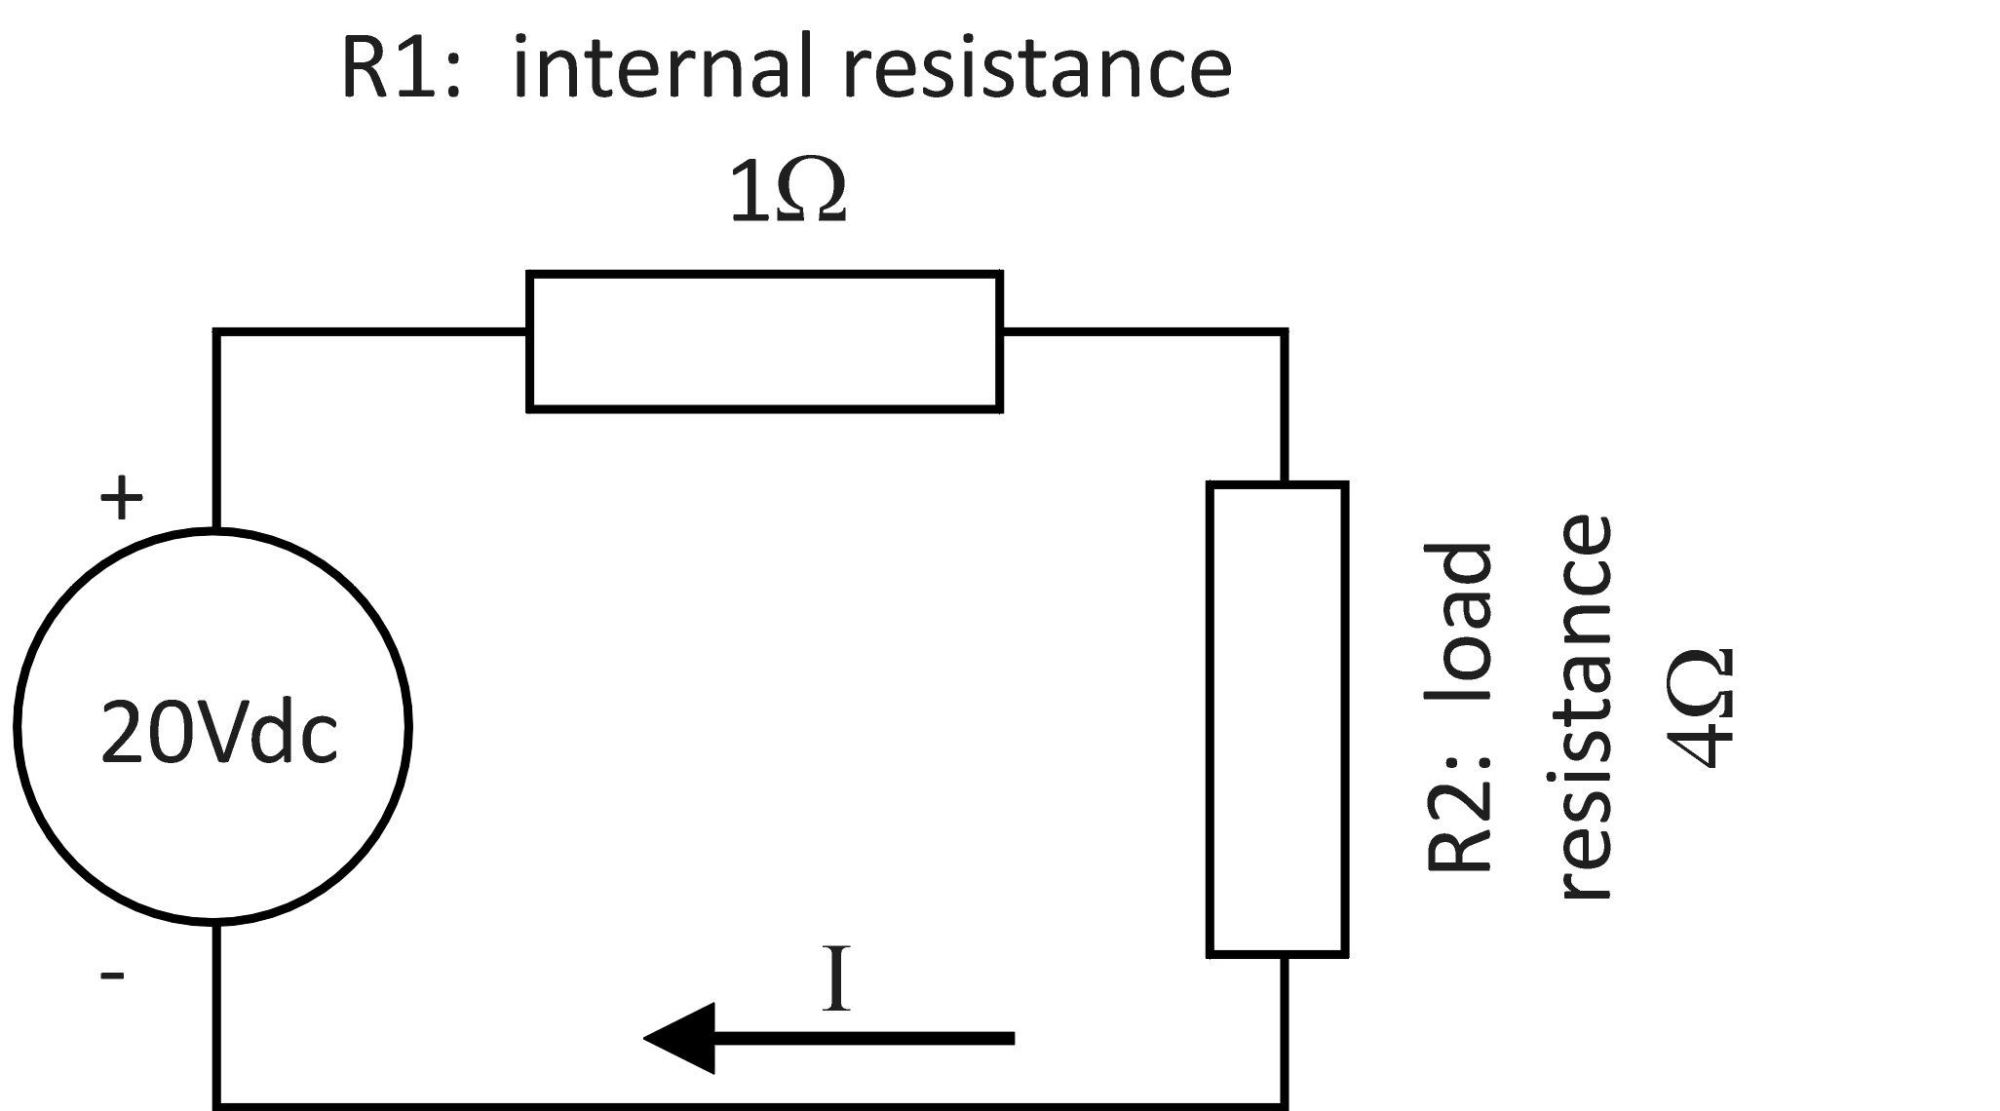 hight resolution of the internal resistance is shown as a separate resistor r1 and the load resistor as r2 it is a simple series circuit and the same current i flows through